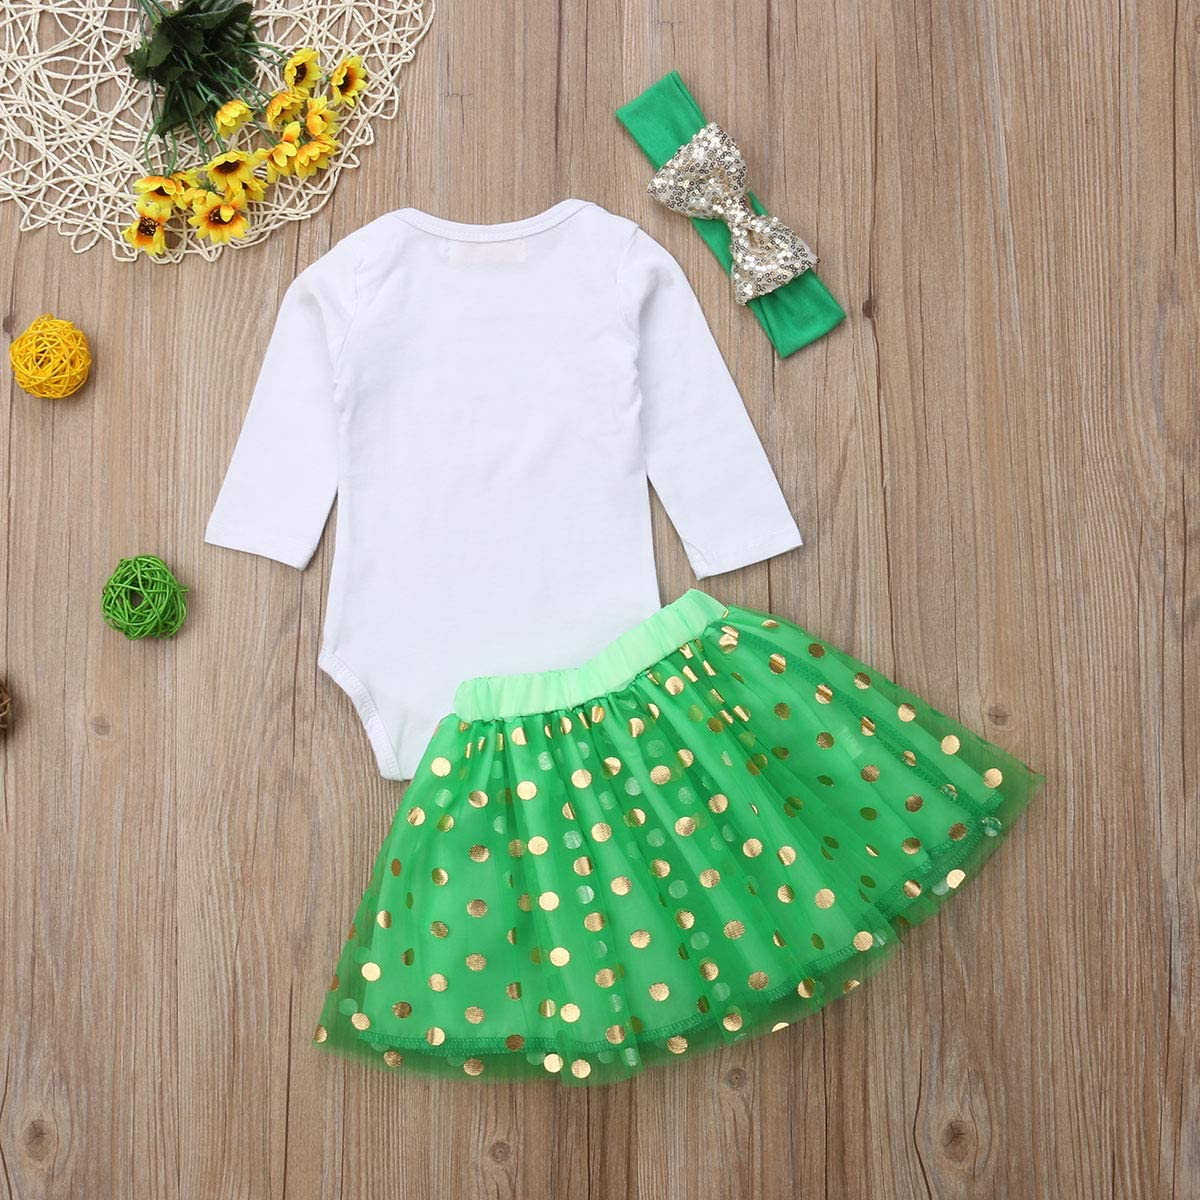 Guyay 3PCS Baby Girl Christmas Romepr Tutu Skirt Outfits Xmas Long Sleeve Bodysuit Skirt Outfits with Headband